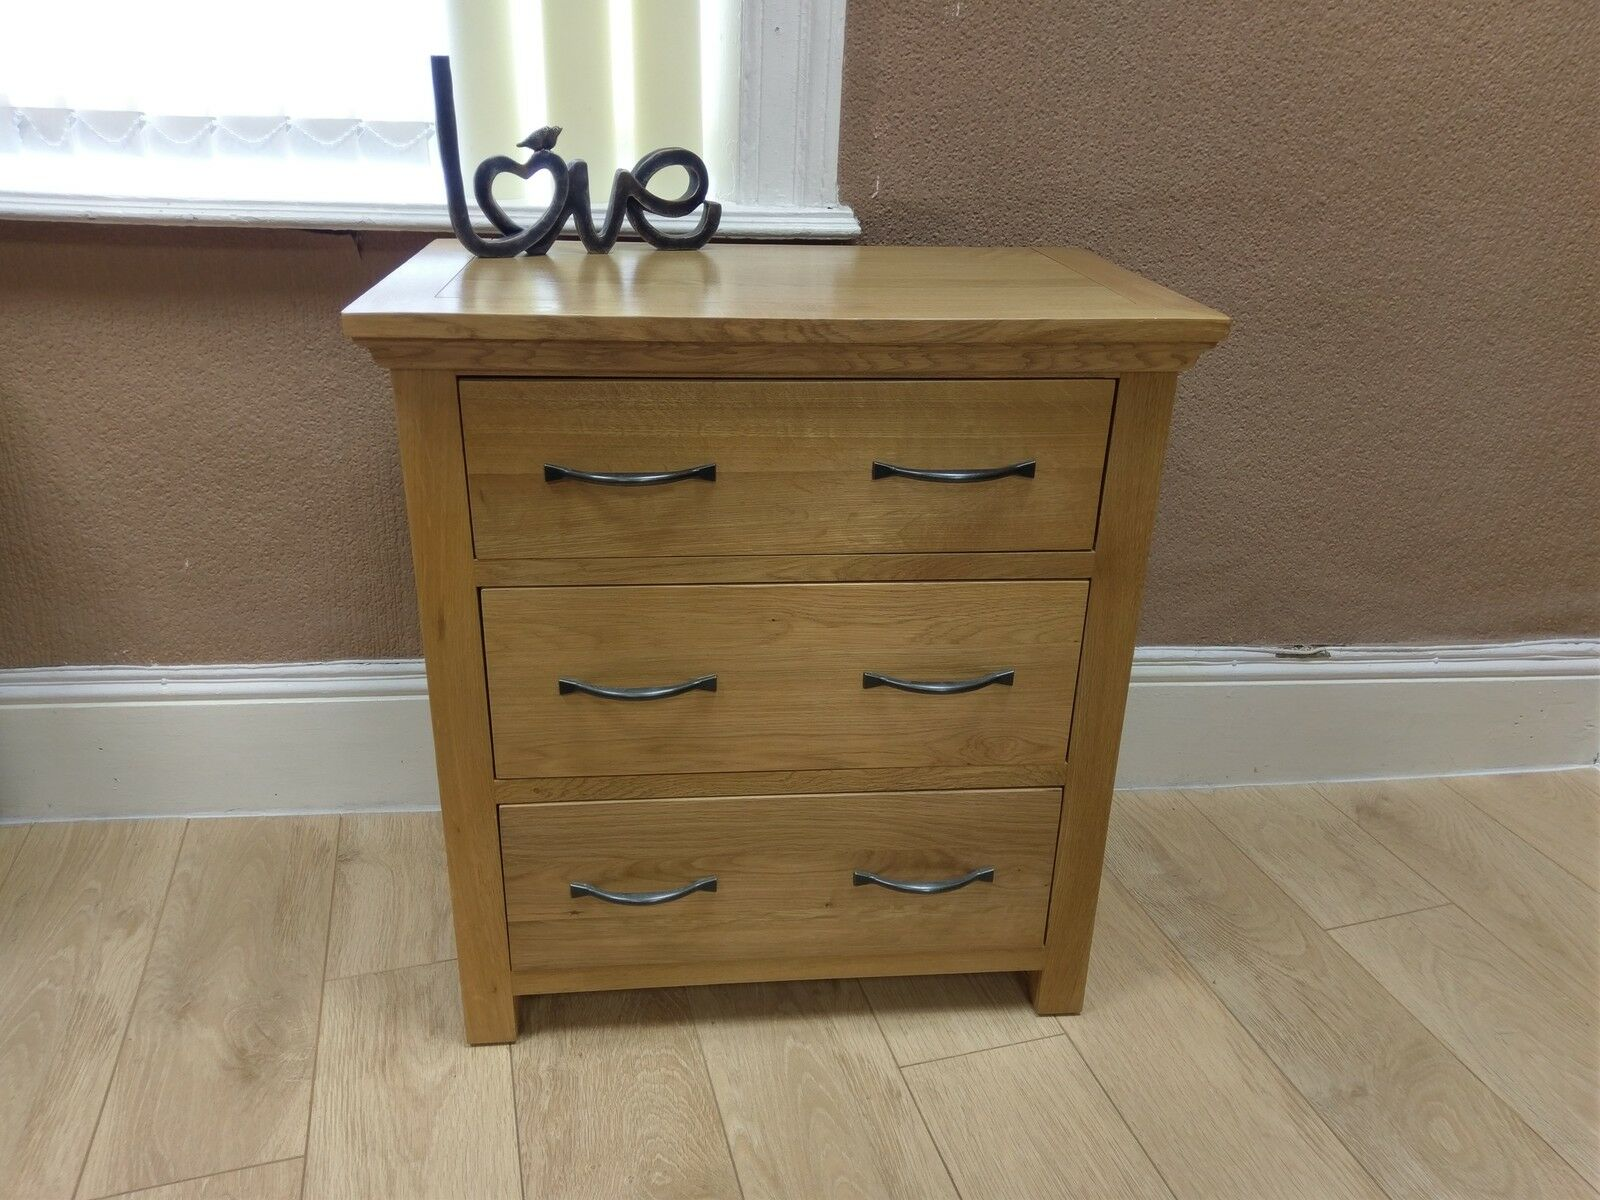 Toronto Solid Oak Small 3 Drawer Chest Of Drawers Compact Bedroom